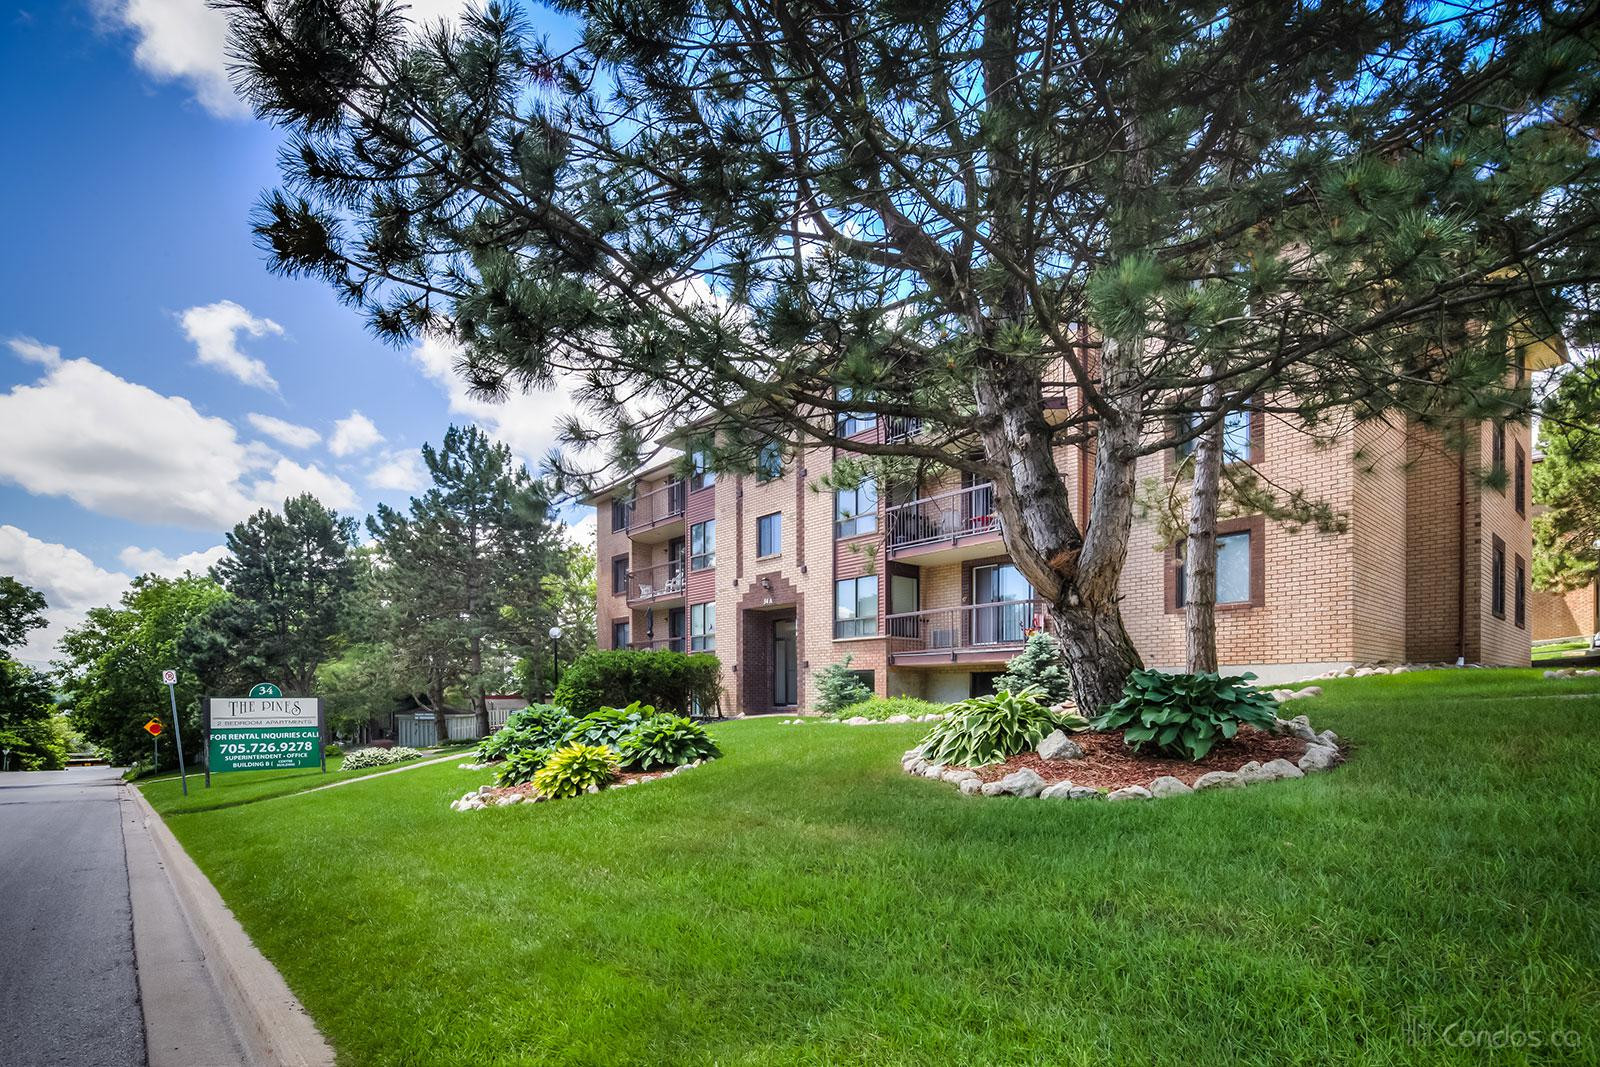 The Pines at 34 Johnson St, Barrie 0